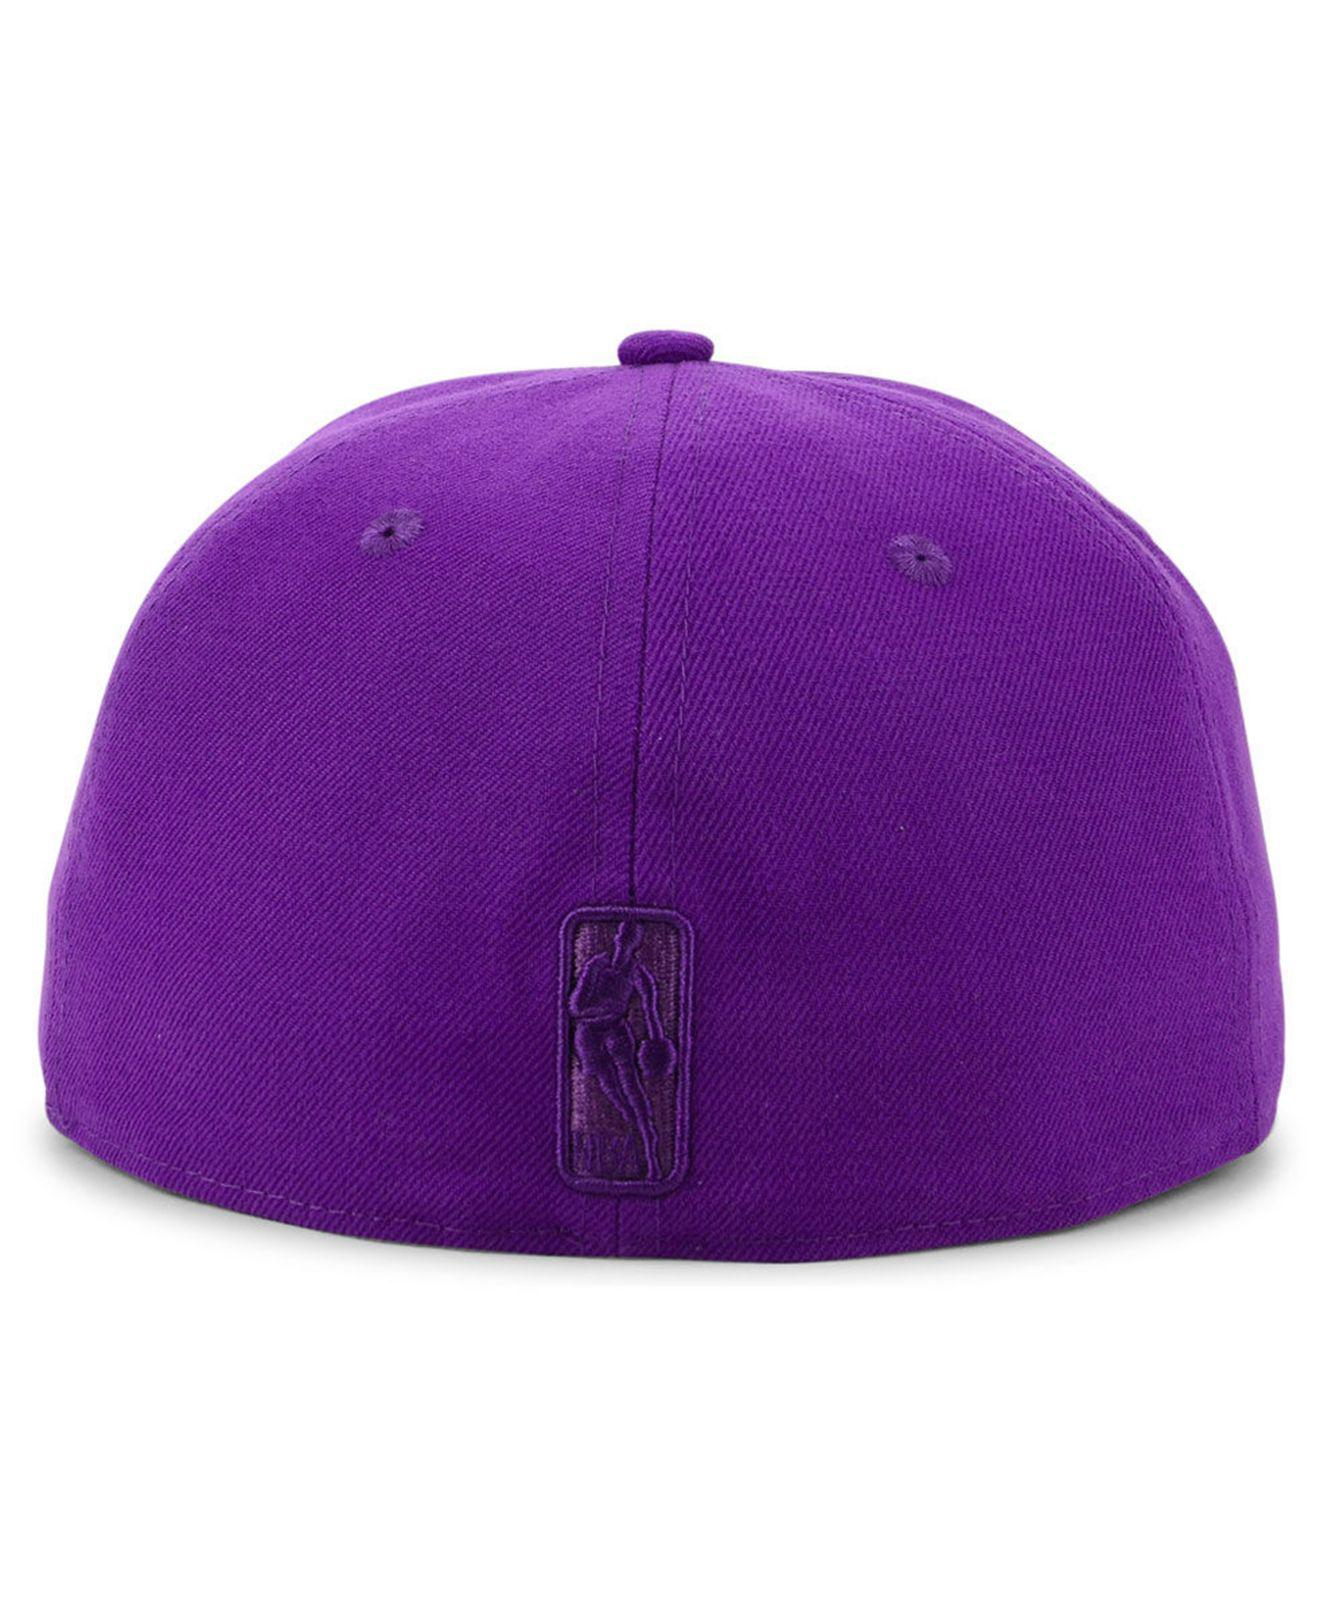 finest selection 11769 13e68 ... where can i buy milwaukee bucks color prism pack 59fifty fitted cap for men  lyst.